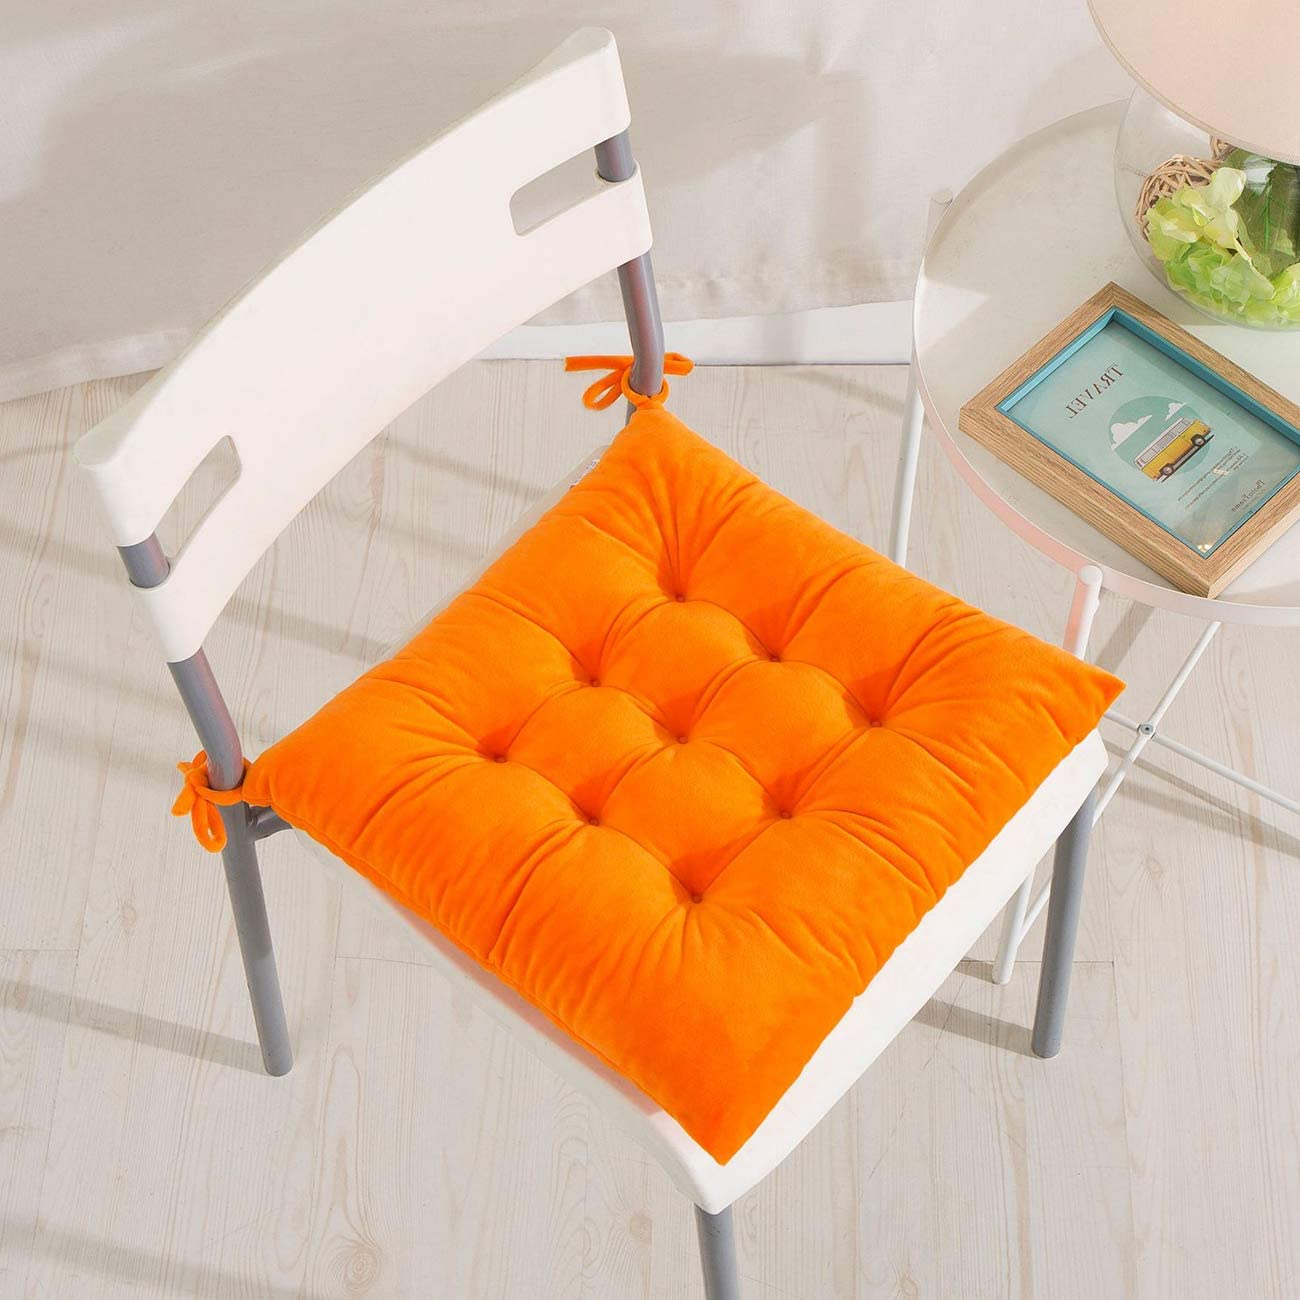 Patio Furniture Accessories Black Zanyb 2 Pack Velvet Chair Pads Square Chair Cushion Outdoor Floor Pillows Meditation Pillow For Seating Patio Office Plain Seat Pad Dining Room Garden Kitchen Chair Velvet